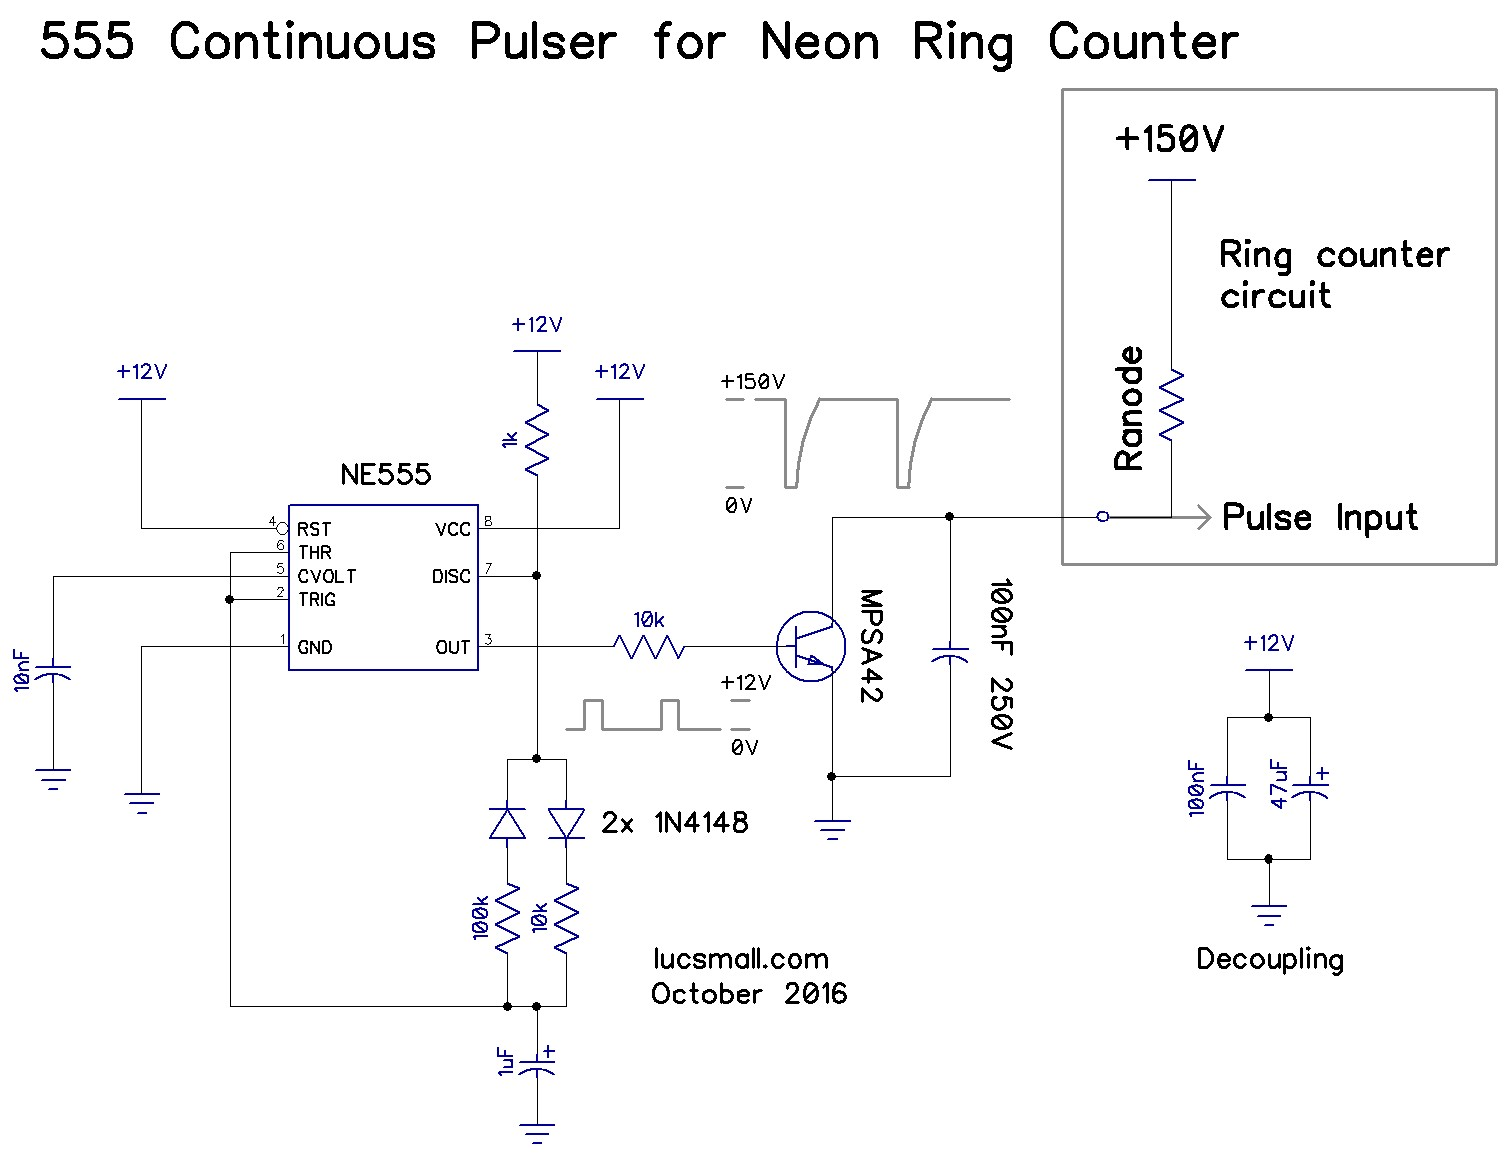 Neon Ring Counters Circuits Help Astable 555 Timer Continuous Pulsing Circuit